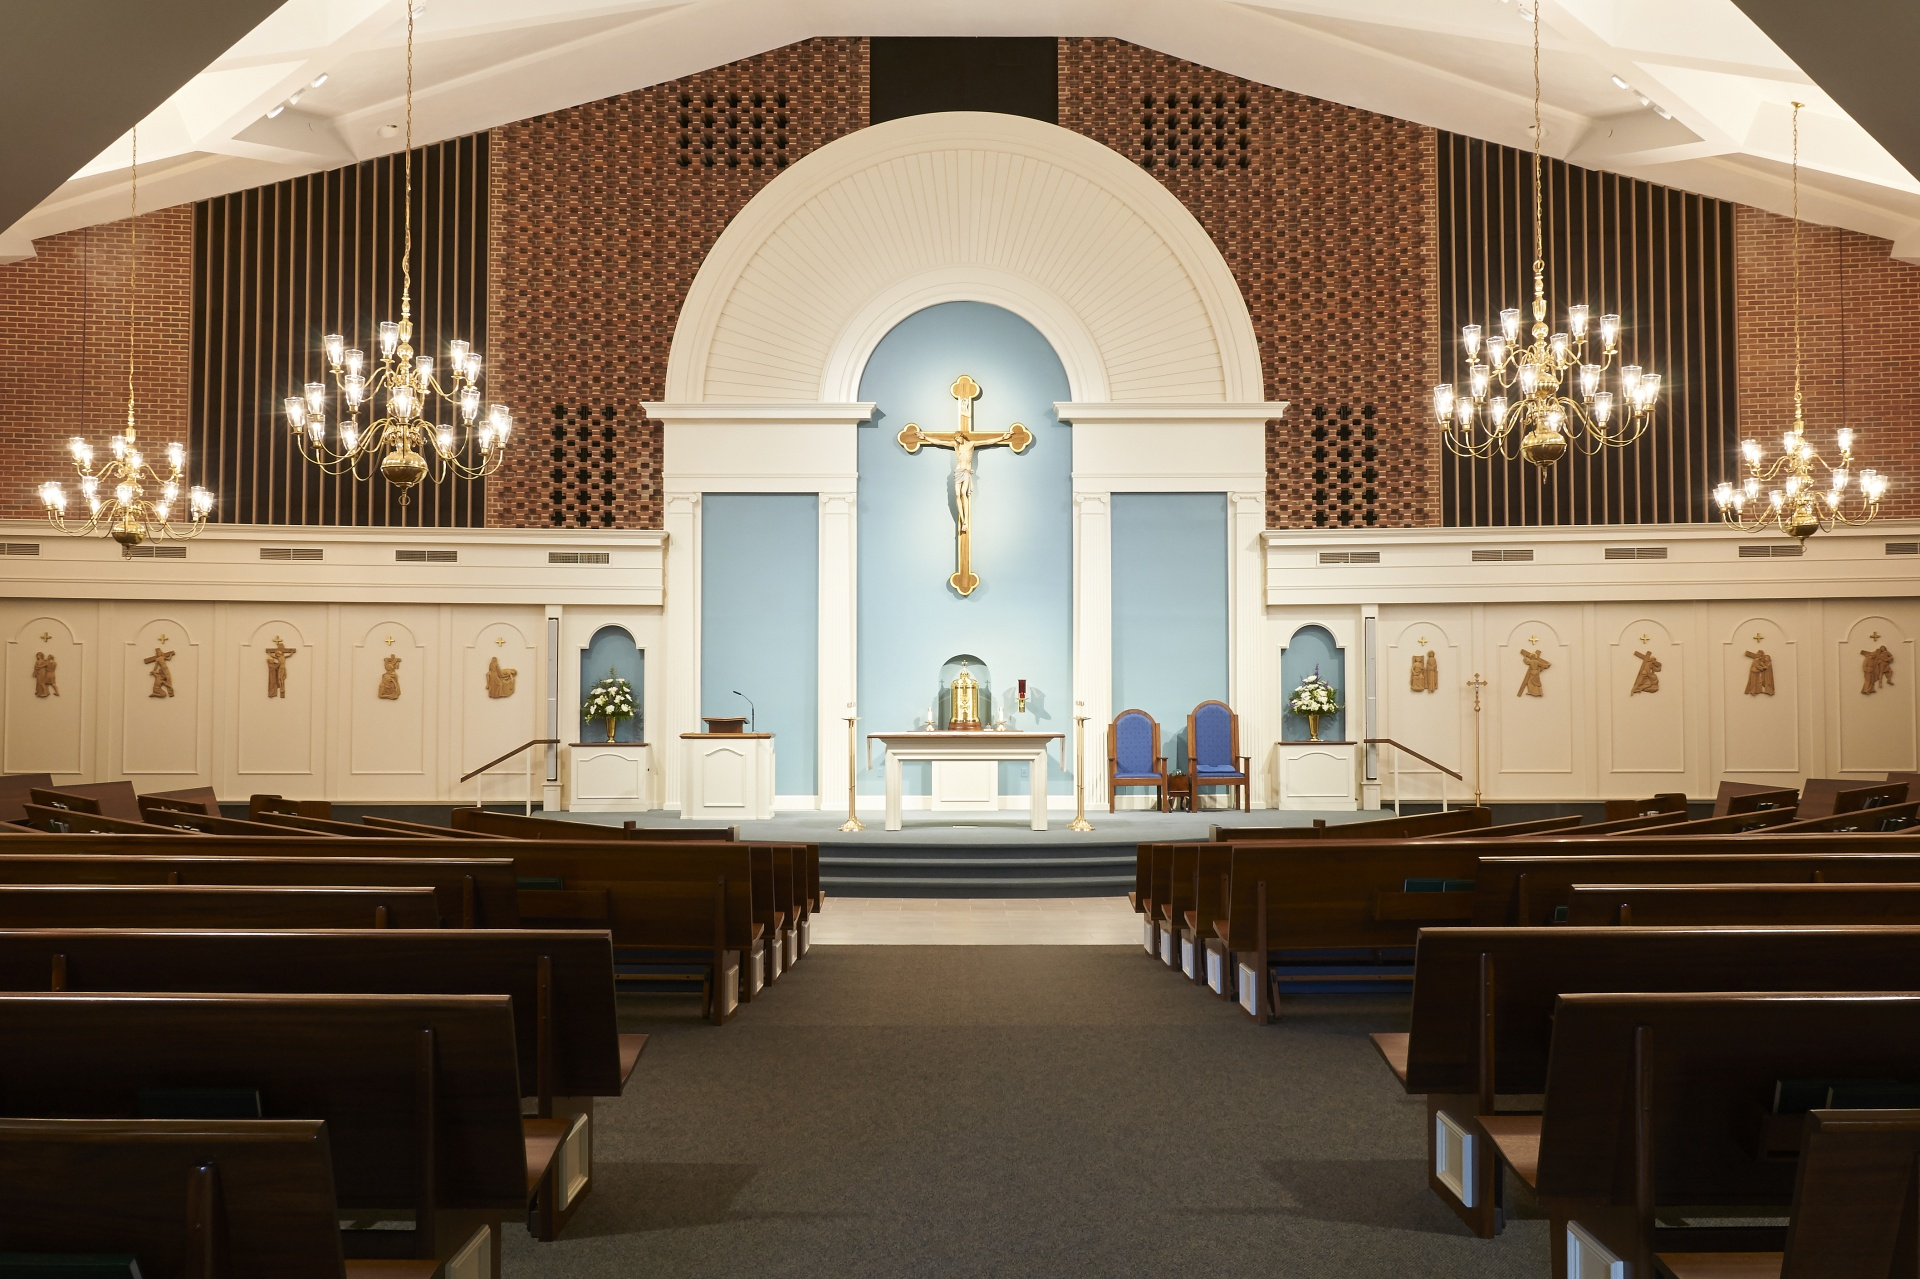 Religious Architecture - St. Elizabeth Ann Seton Catholic Church